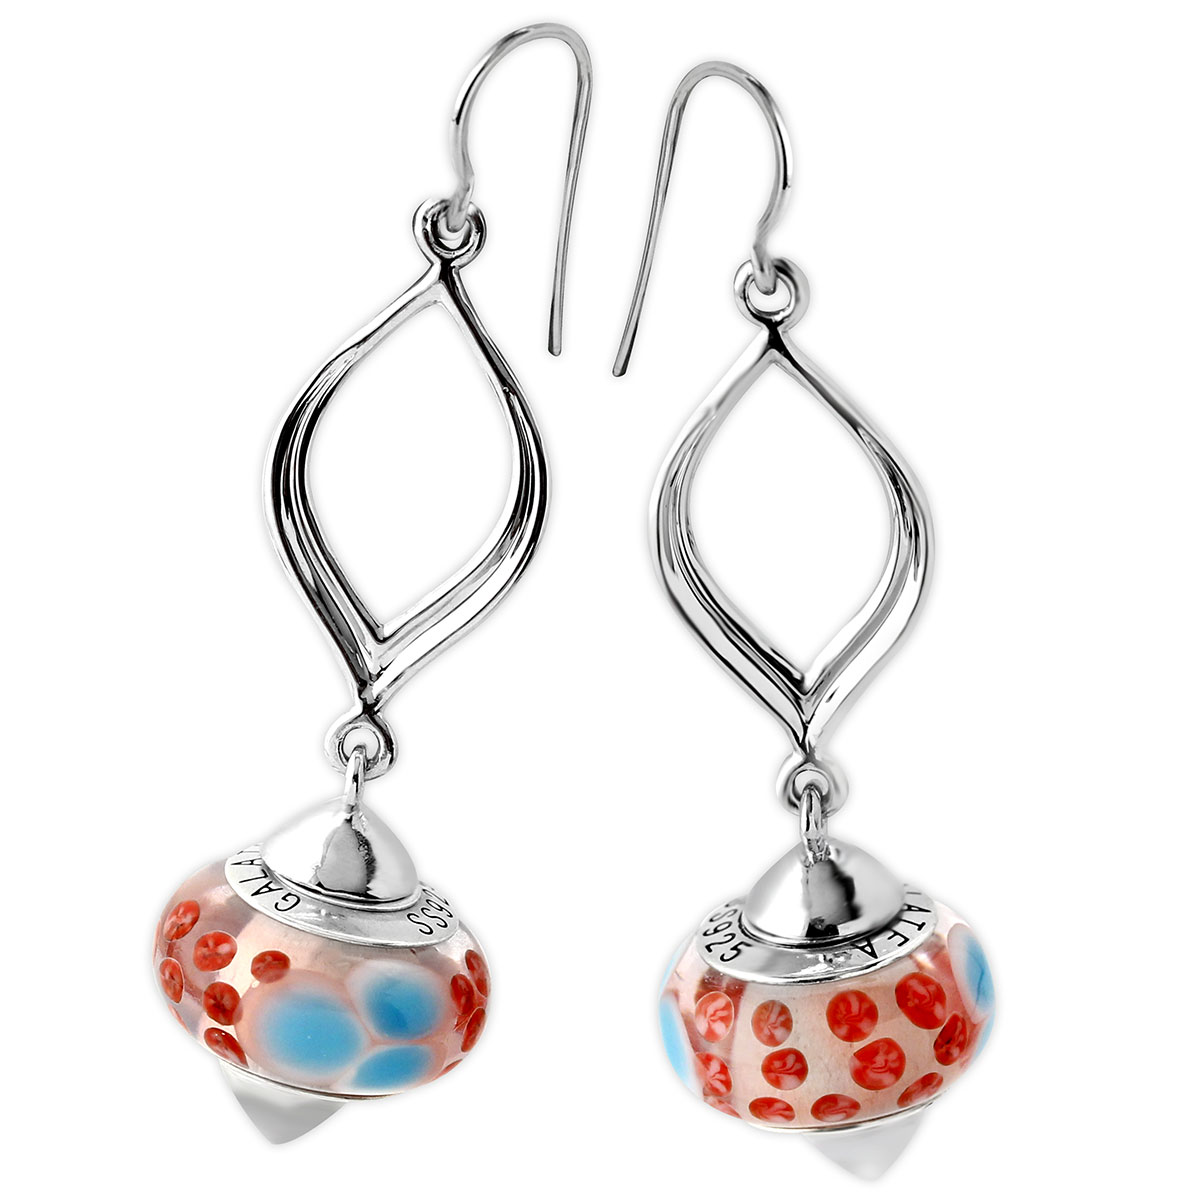 342112-Galatea Interchangeable Earrings with Red & Blue Beads